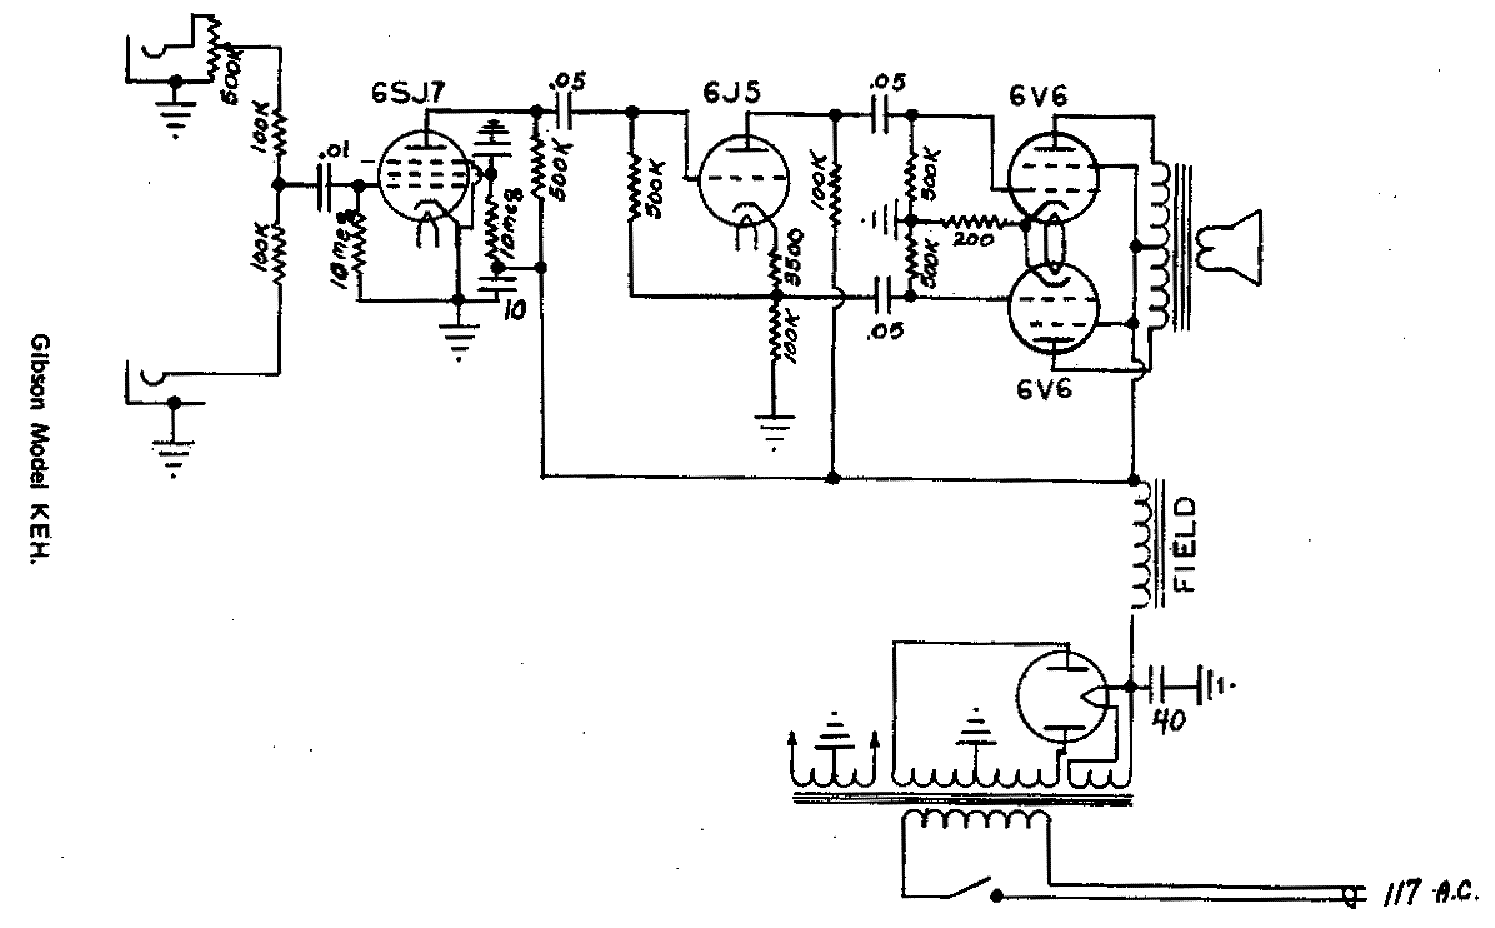 gibson eh-125 - page 3